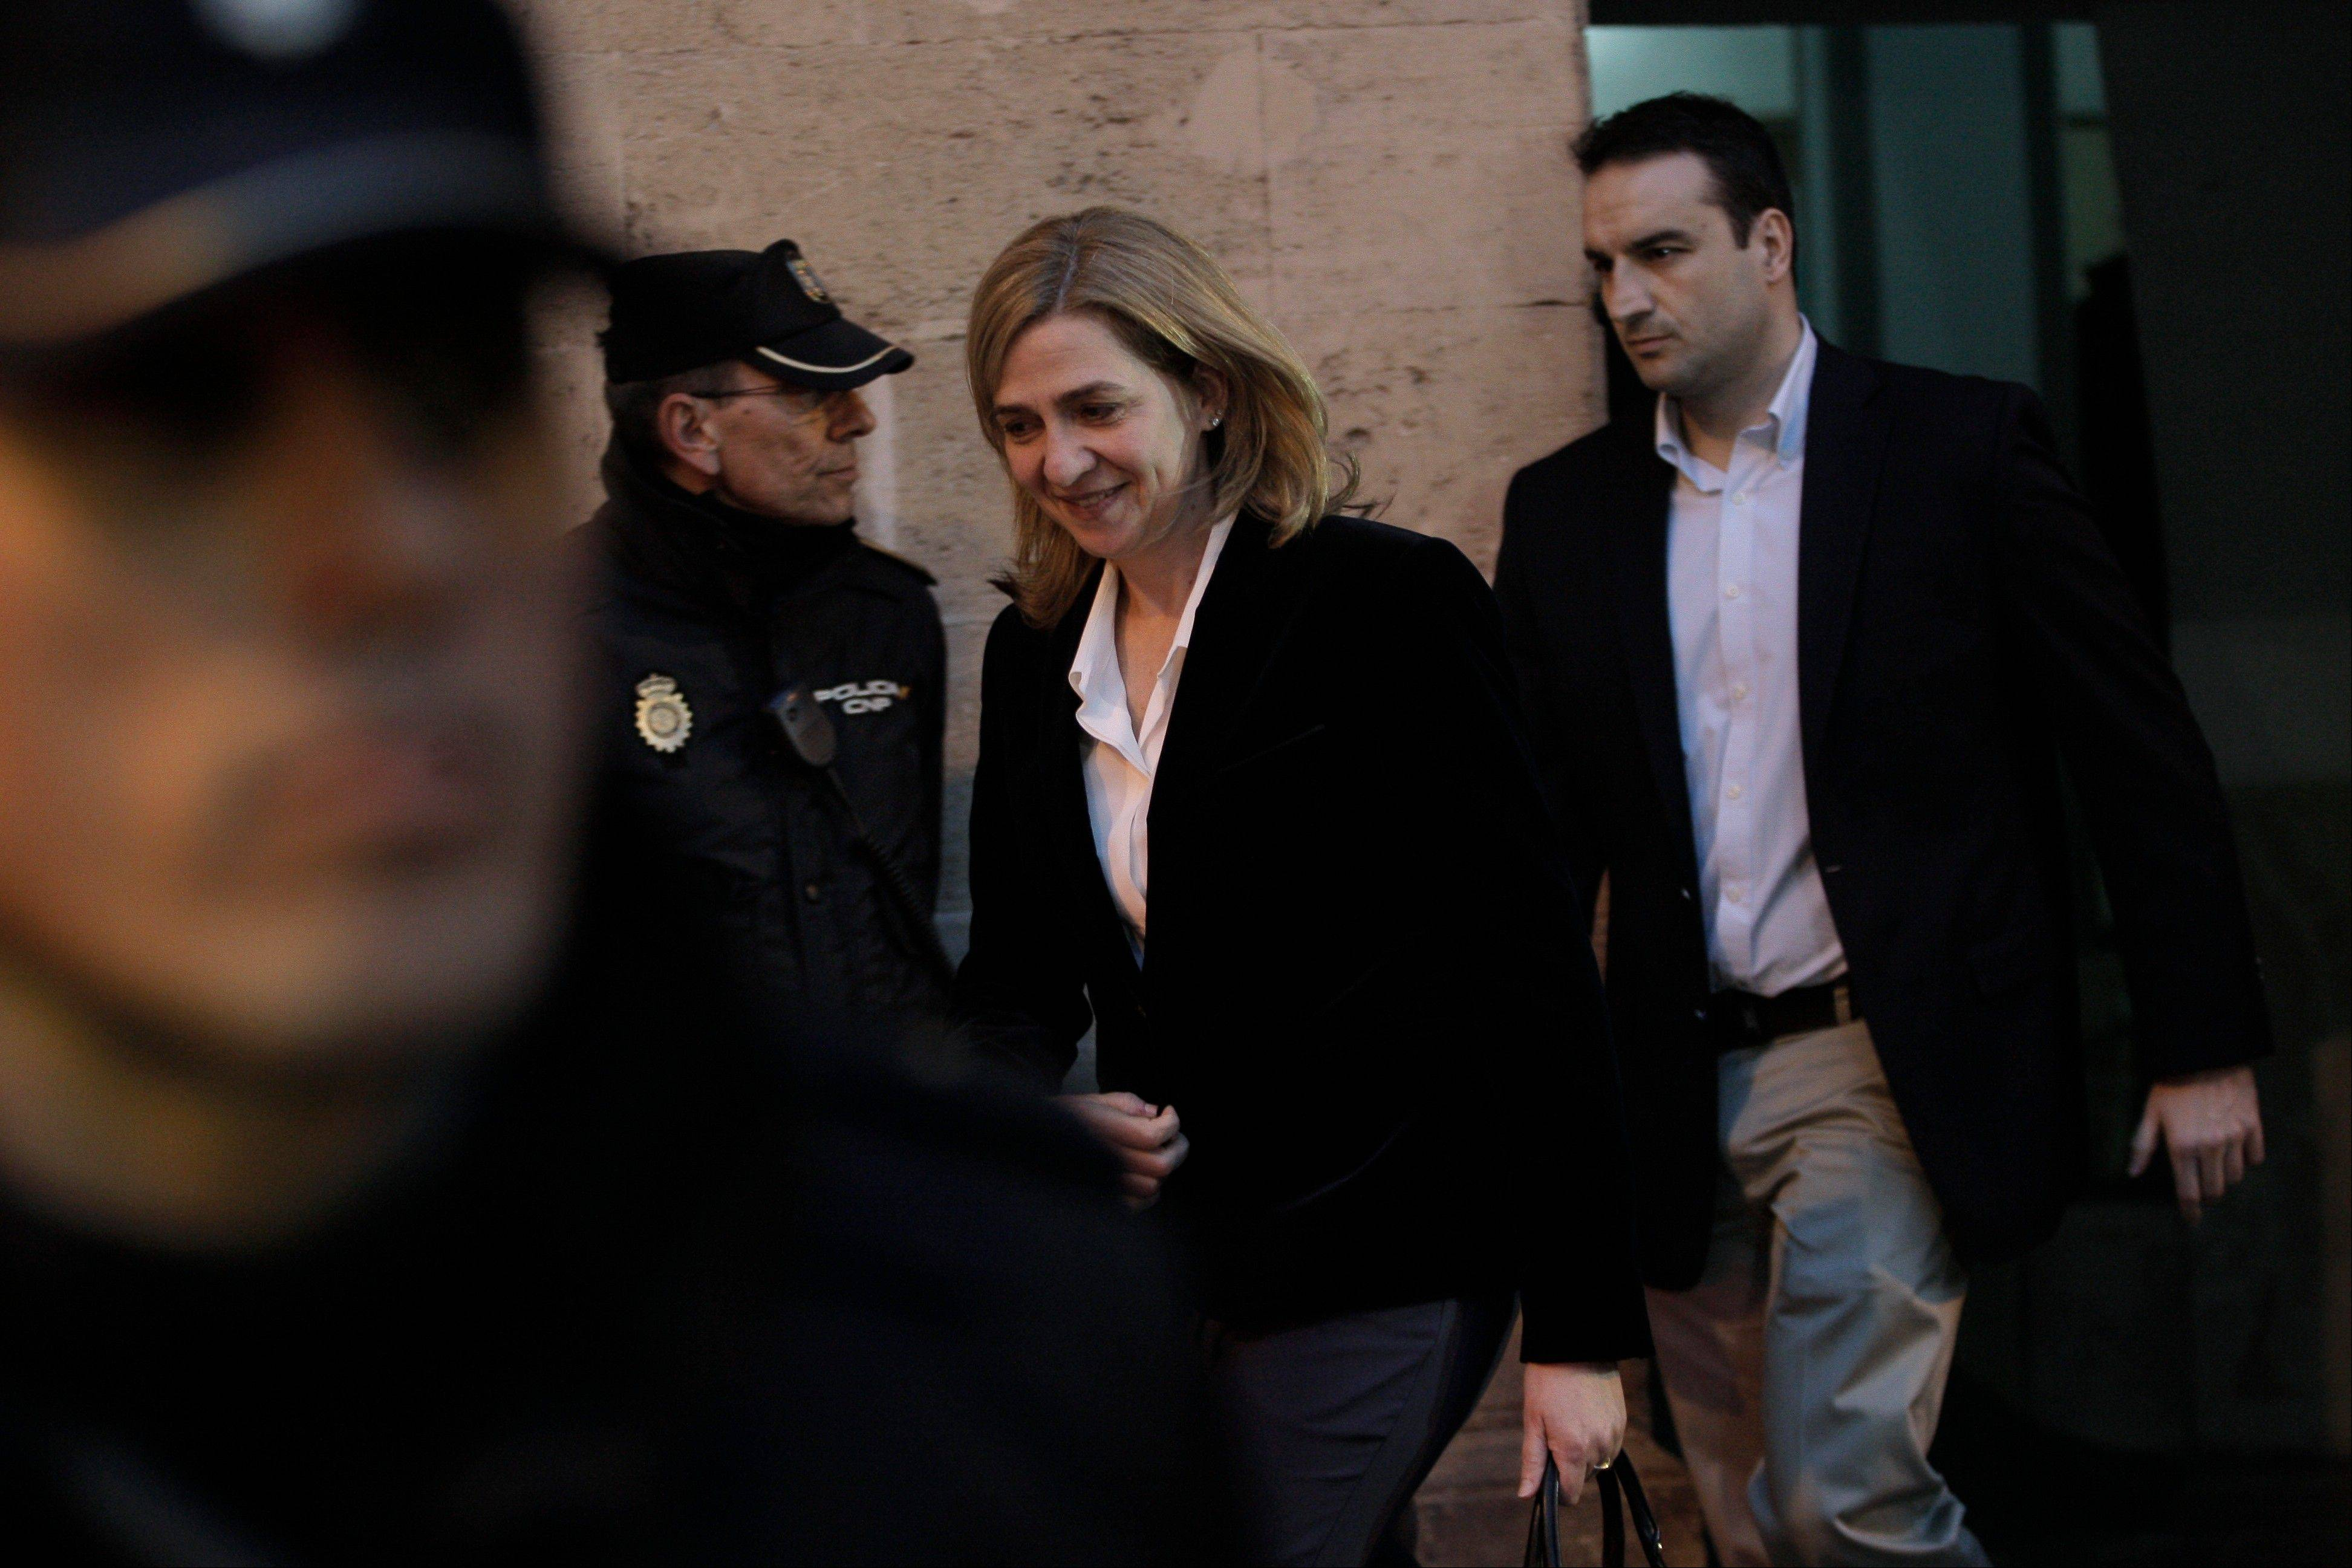 Spain's Princess Cristina, center, leaves the courthouse Saturday in Palma Mallorca, Spain. Cristina testified in court during a historic judicial hearing to help determine whether she and her husband illegally used funds from a company to pay for expenses, including expensive parties at their modernist Barcelona mansion.